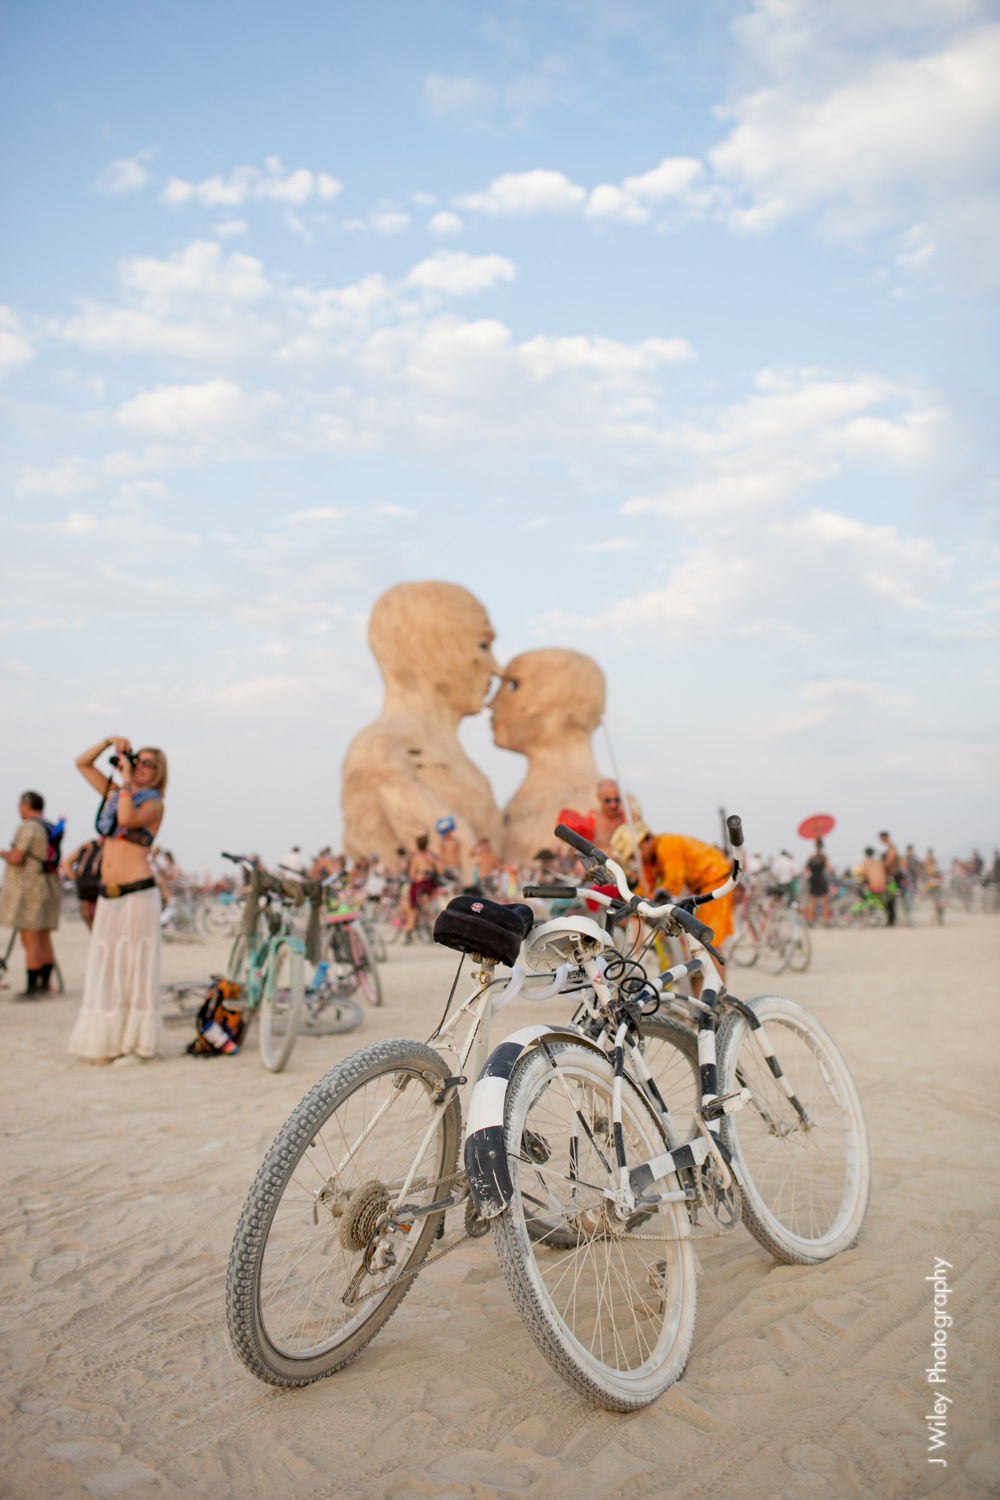 burning man 2014 caravansary art car playa temple-23